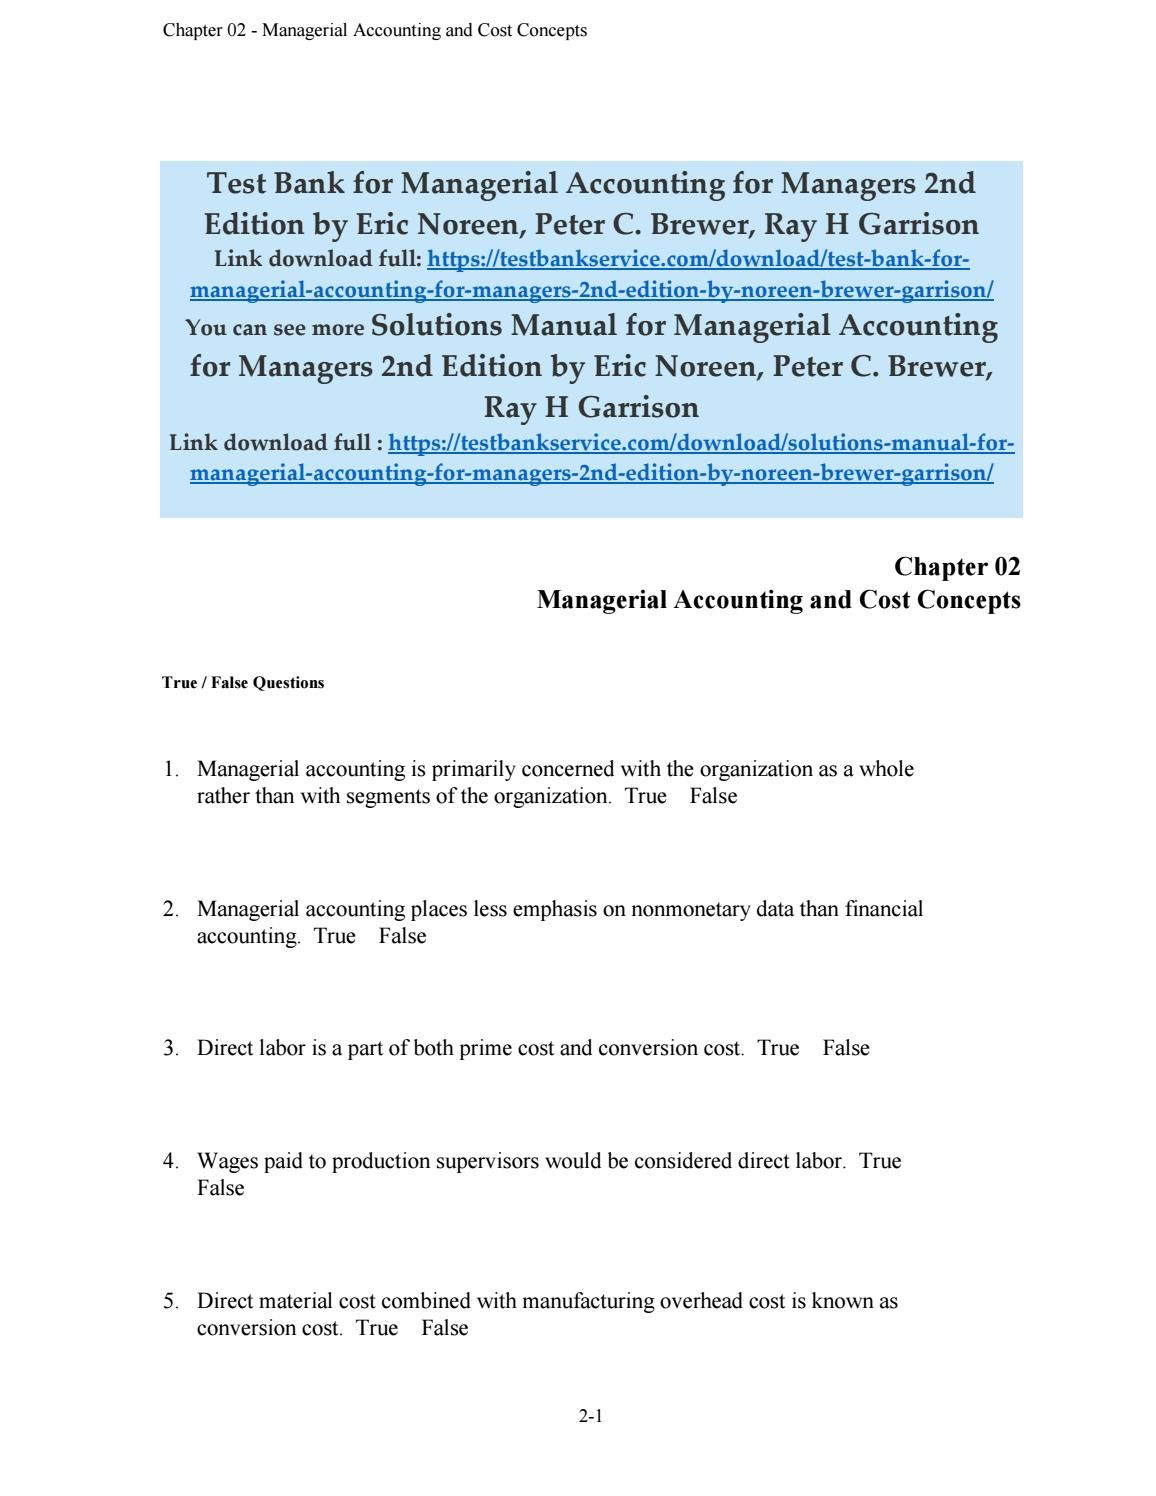 Test bank for managerial accounting for managers 2nd edition by eric ...